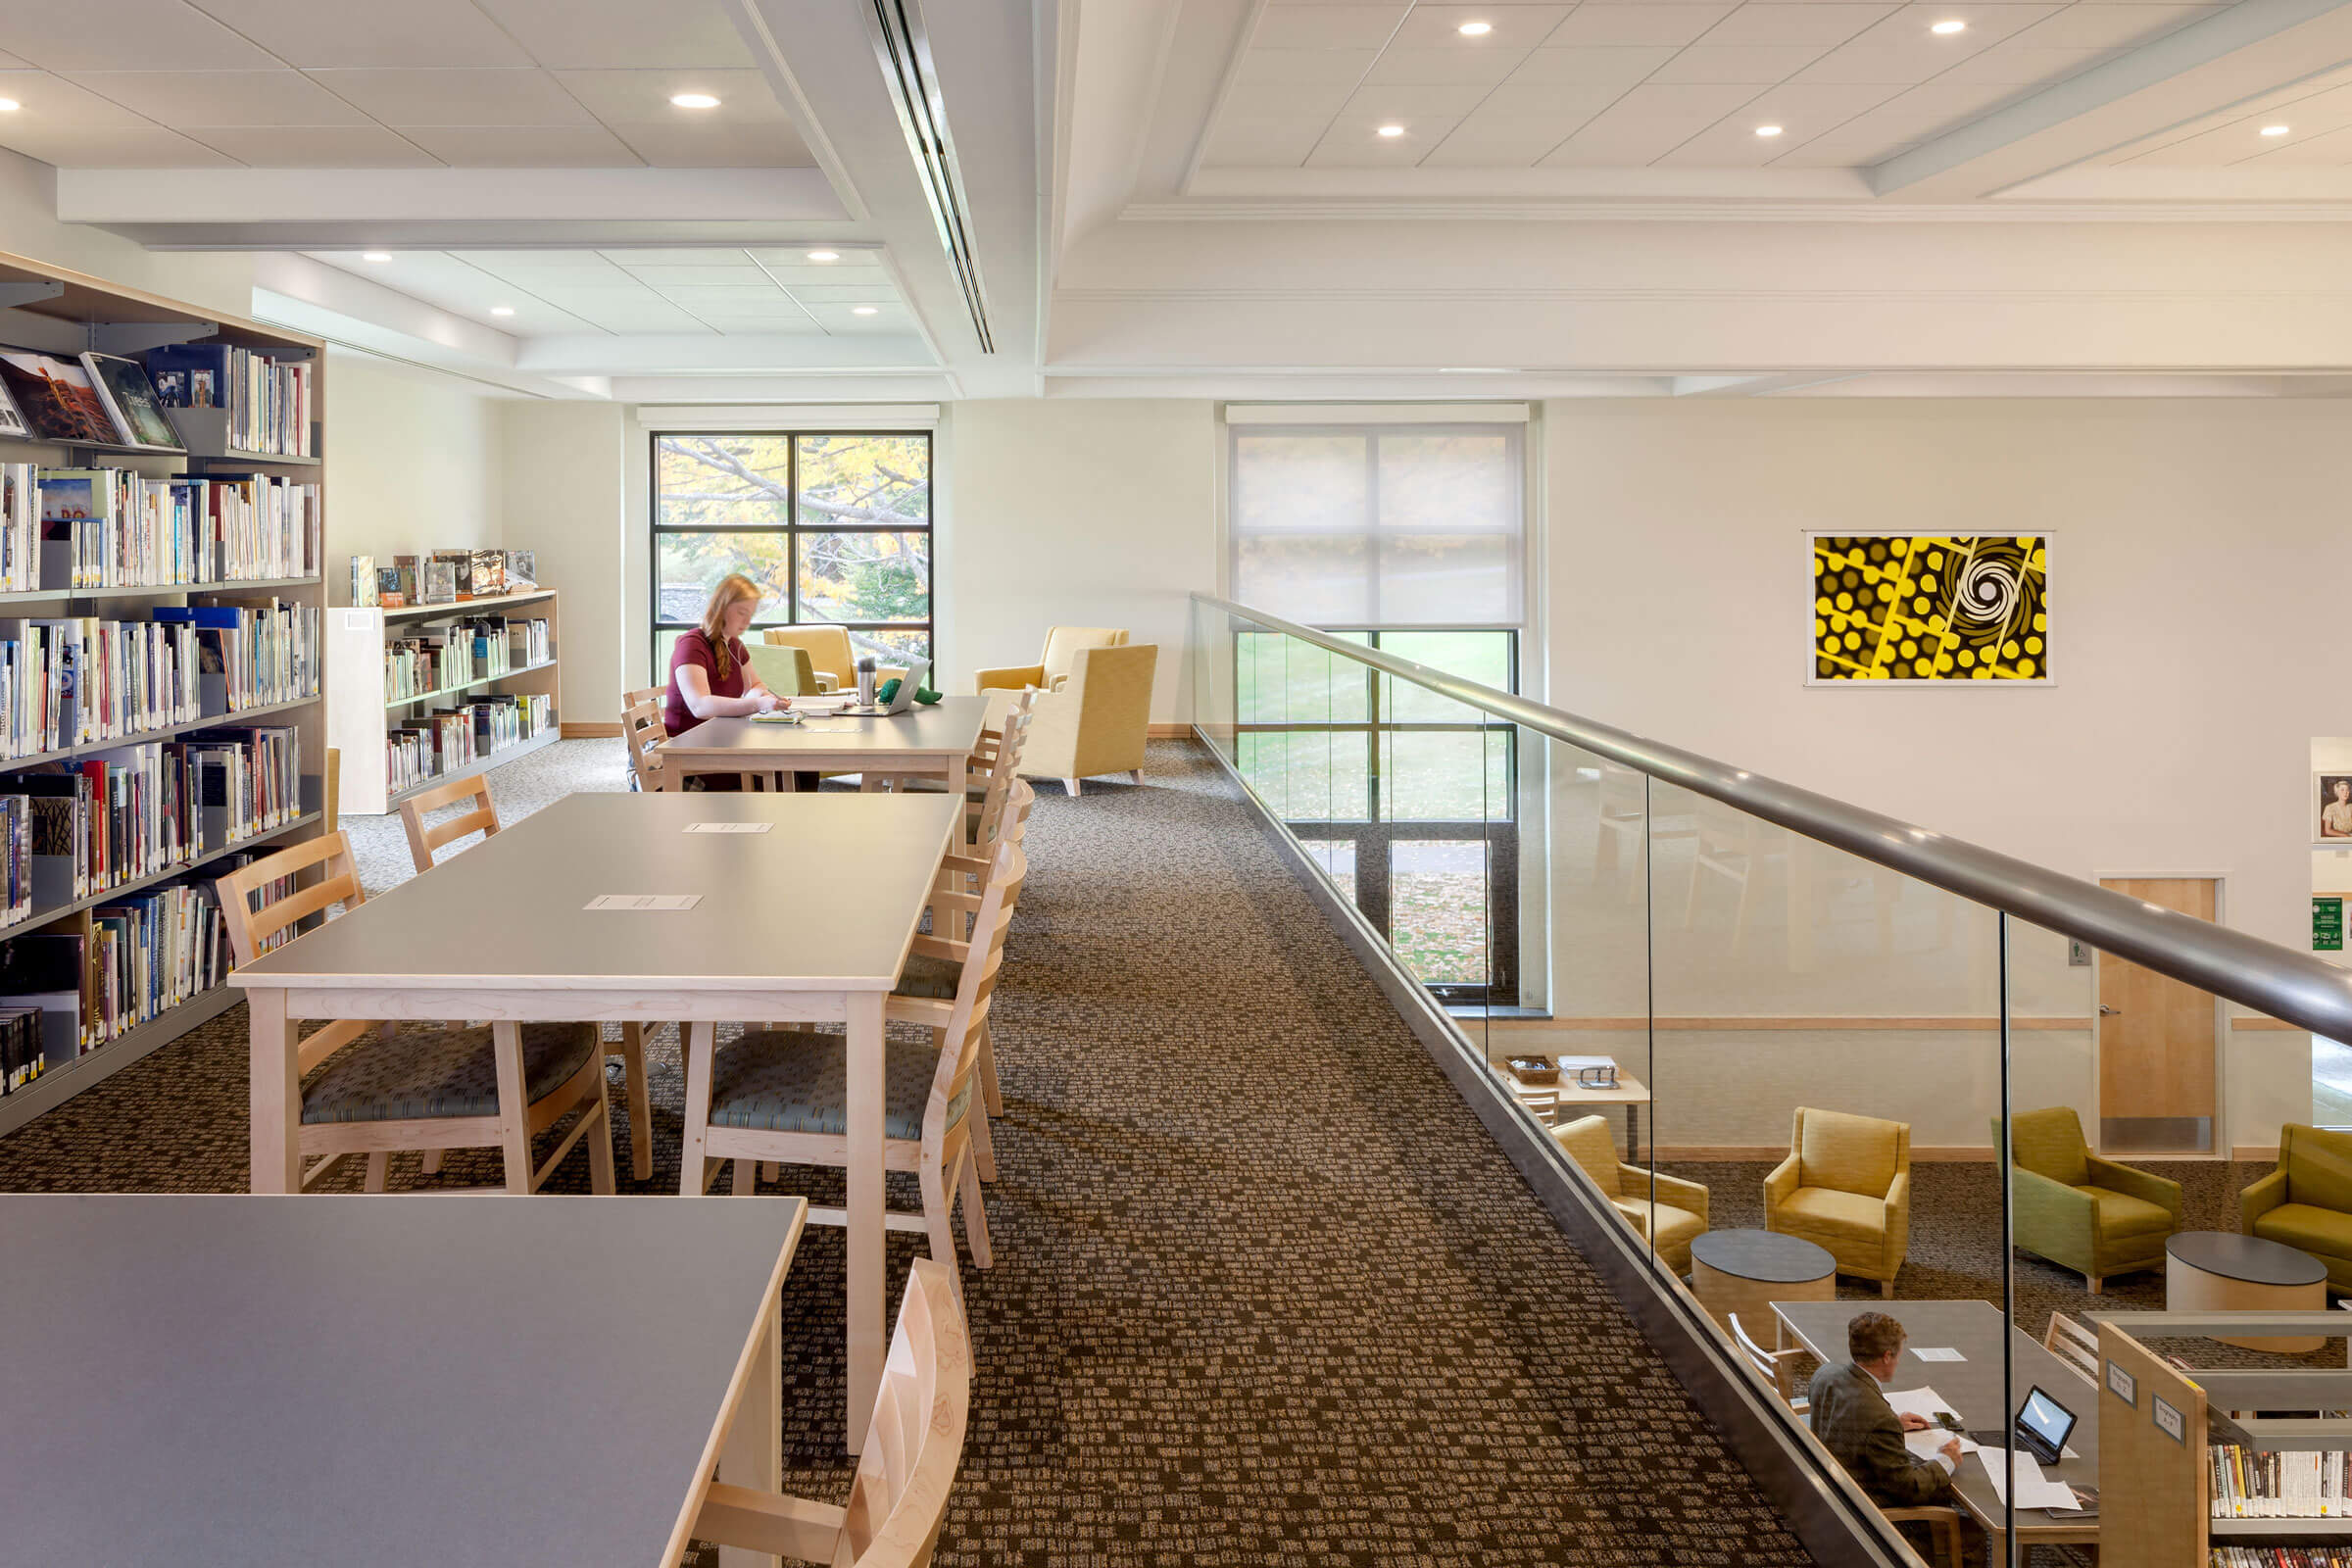 Upper balcony view of Geier Library, at the Berkshire School. Student artwork is seen on the walls, and the view down to the library's main floor.